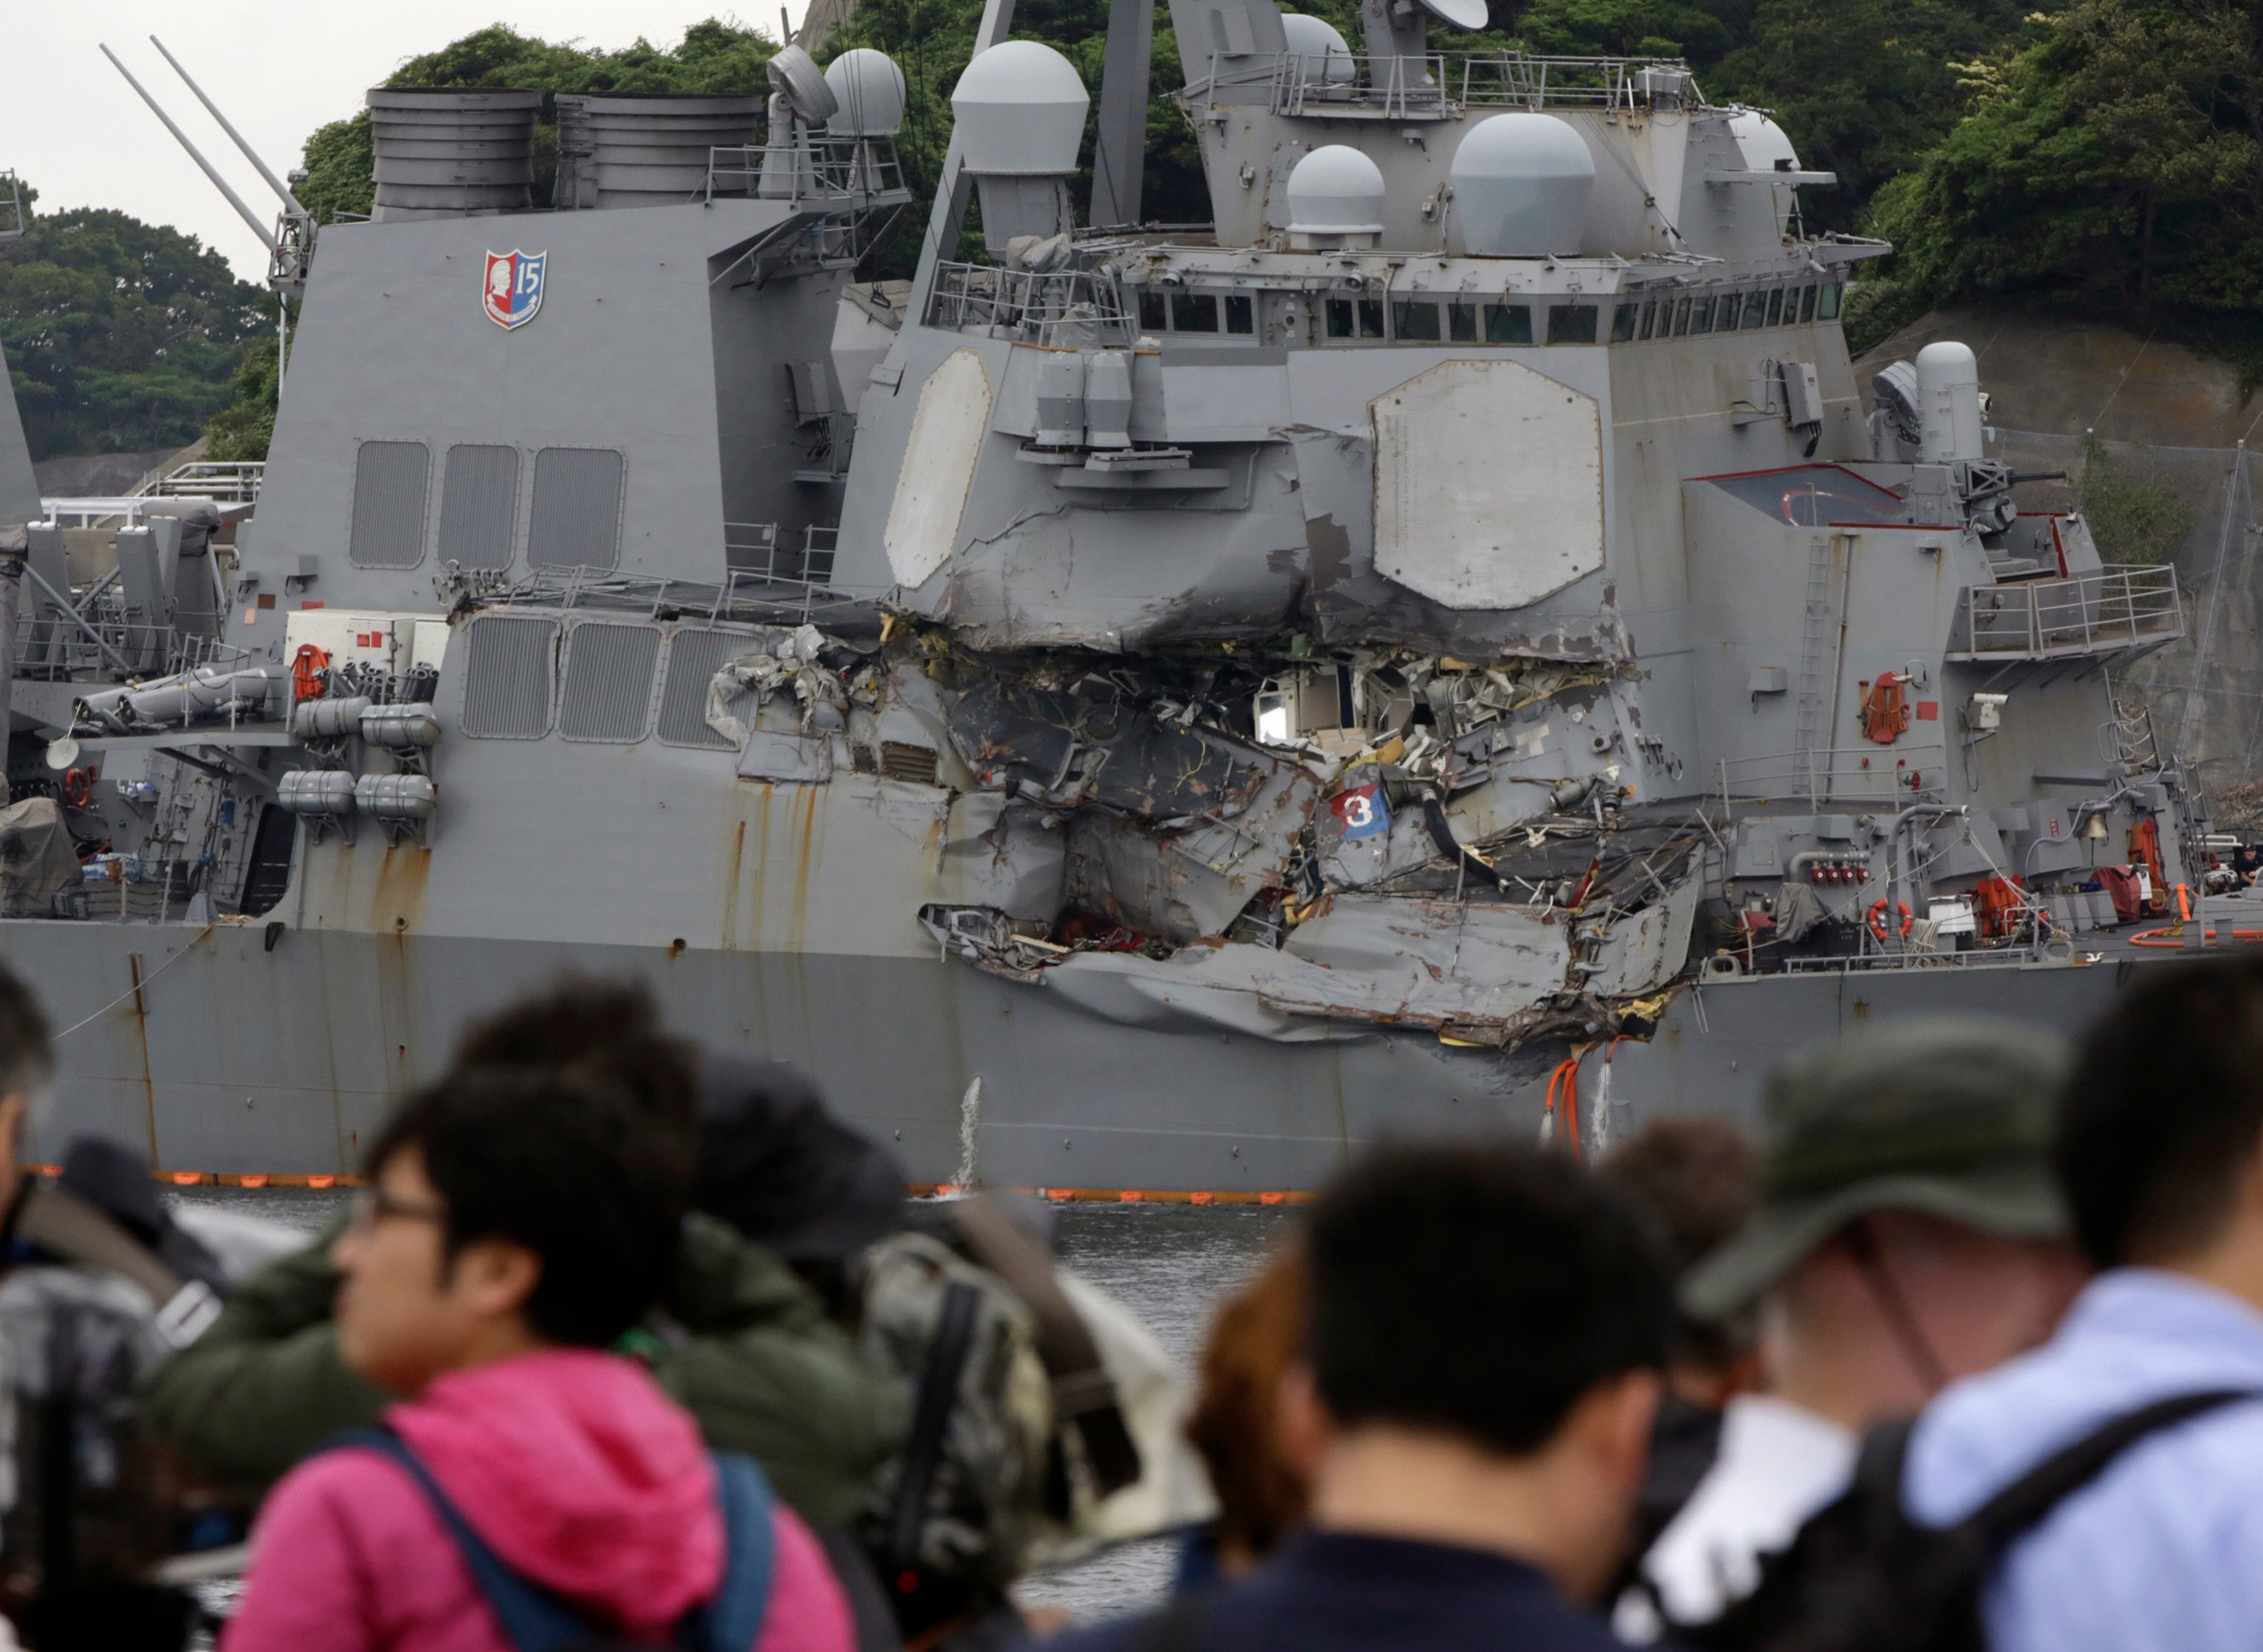 Journalists observe the damaged USS Fitzgerald at the U.S. Naval base in Yokosuka. Navy divers found sailors' bodies Sunday aboard the USS Fitzgerald that collided with a container ship in the busy sea off Japan. (AP Photo/Eugene Hoshiko)